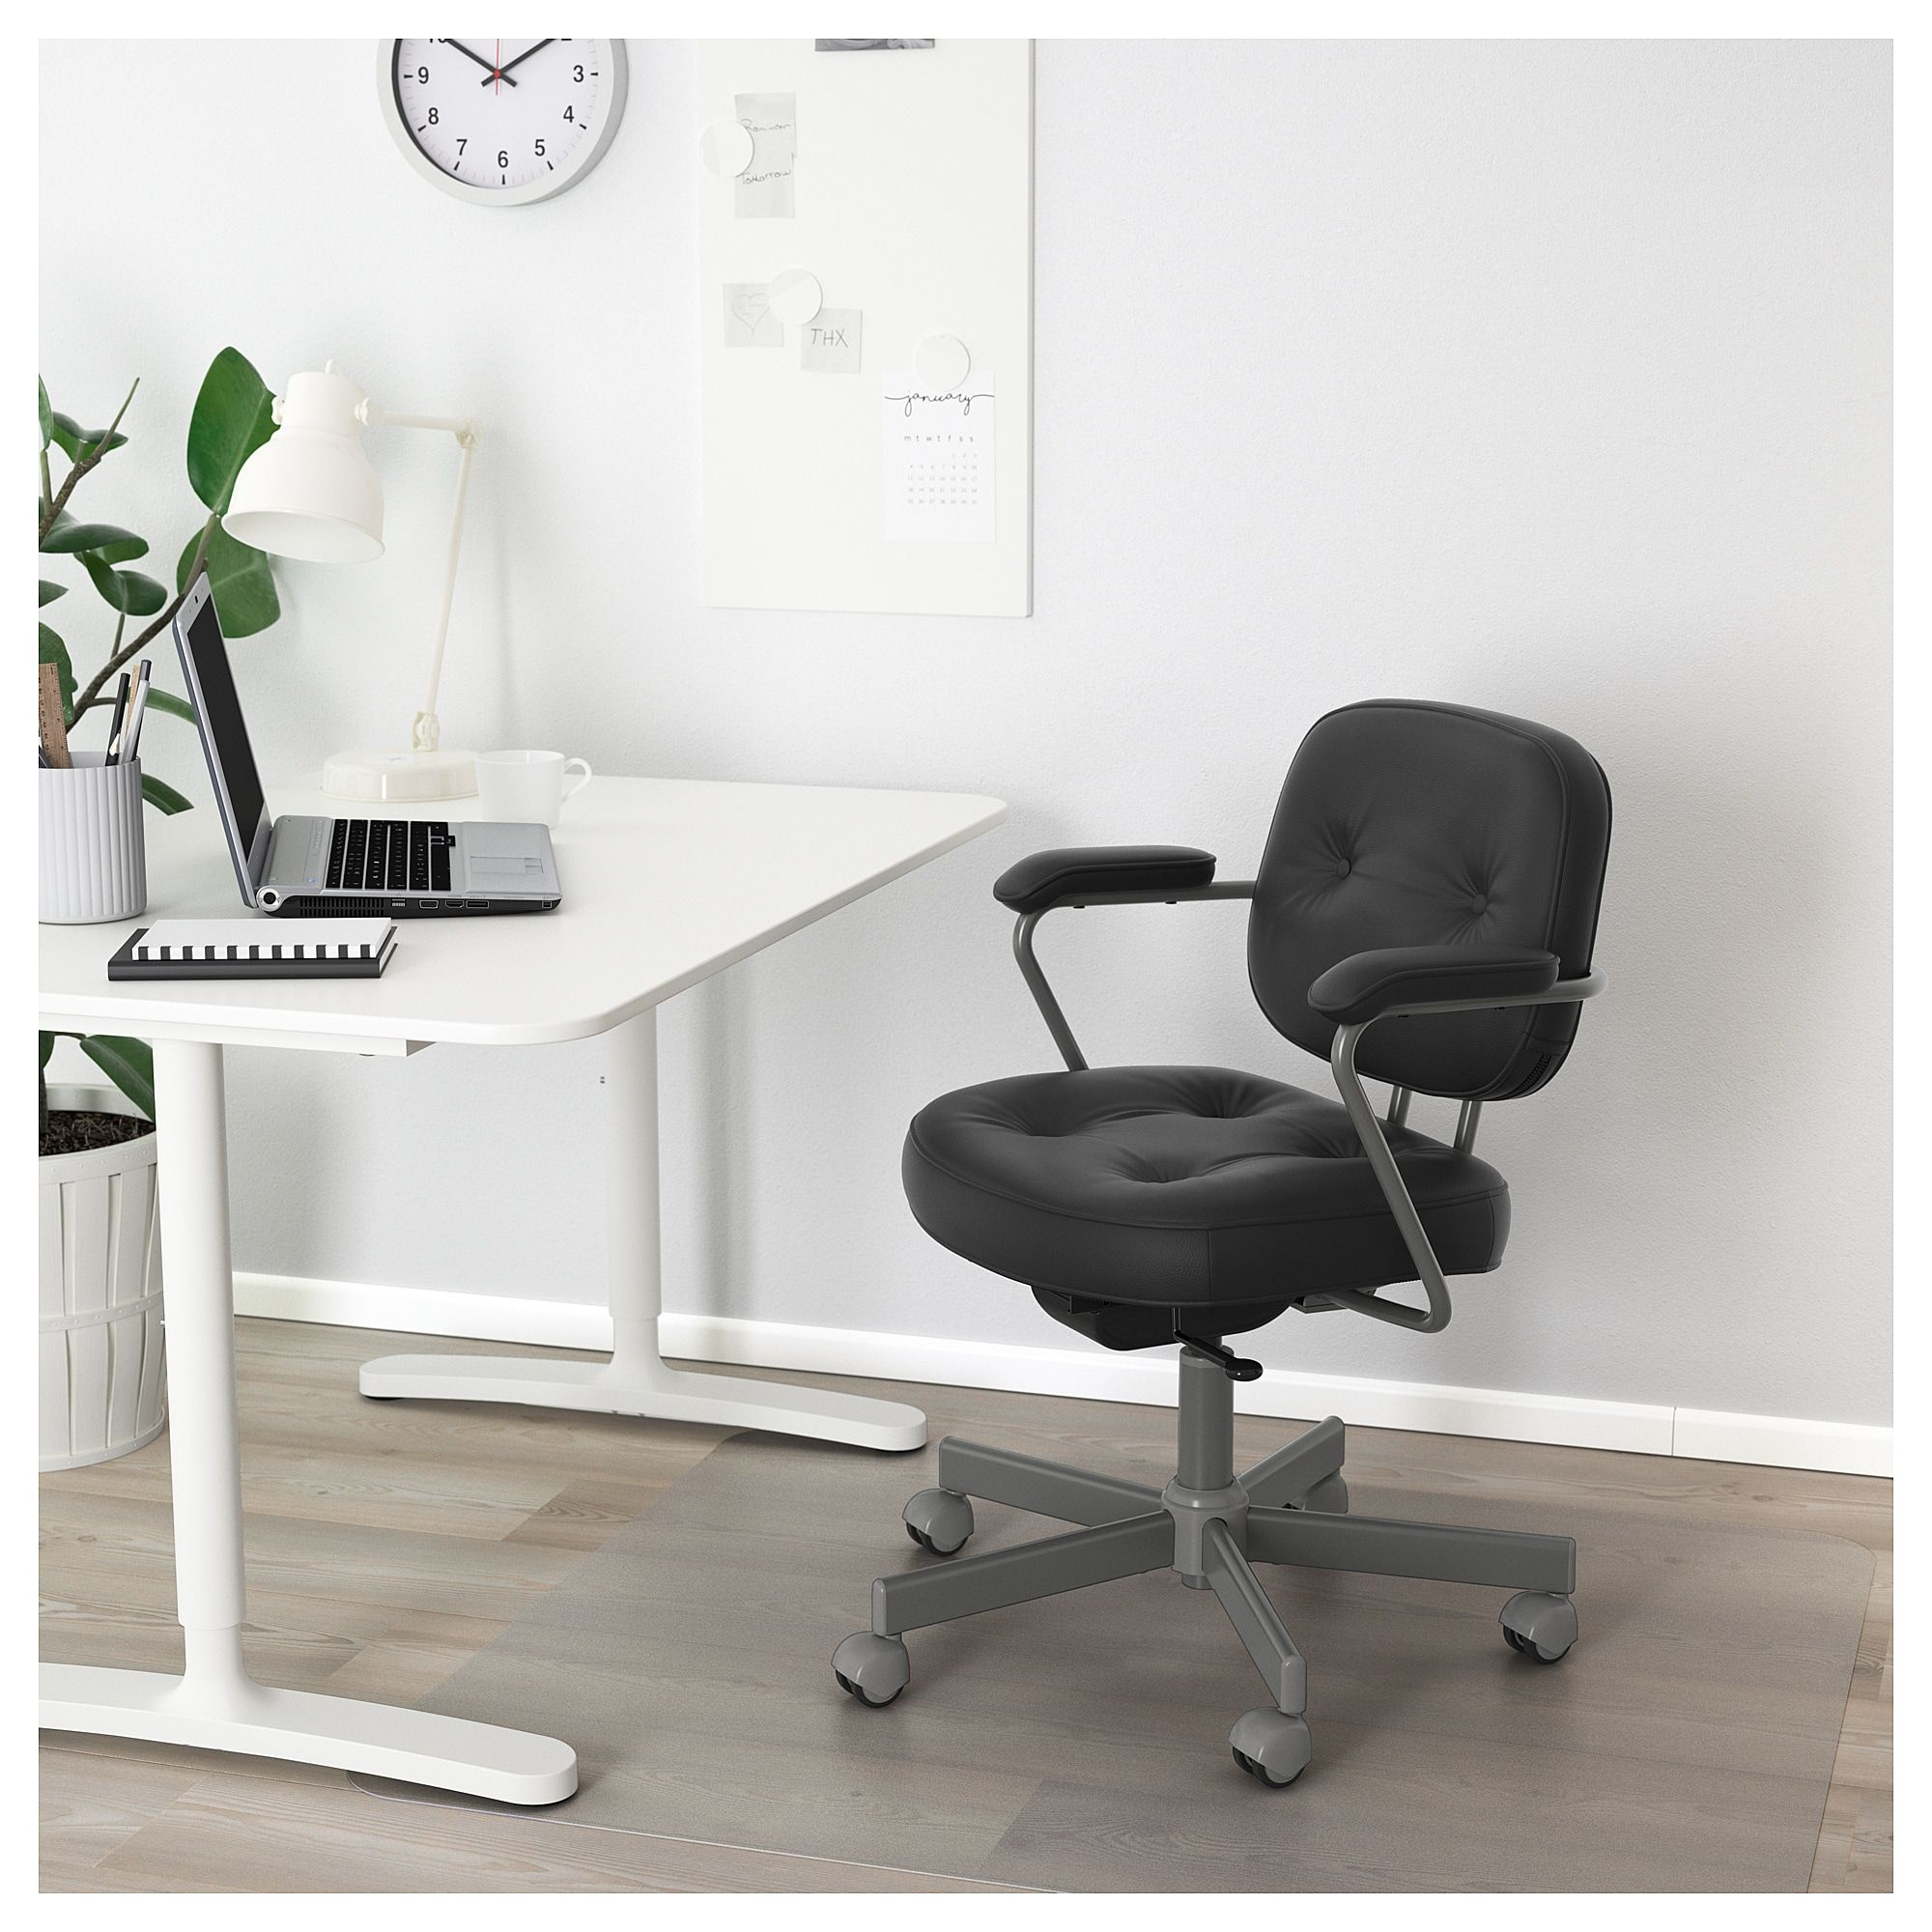 IKEA US Furniture and Home Furnishings Office chair